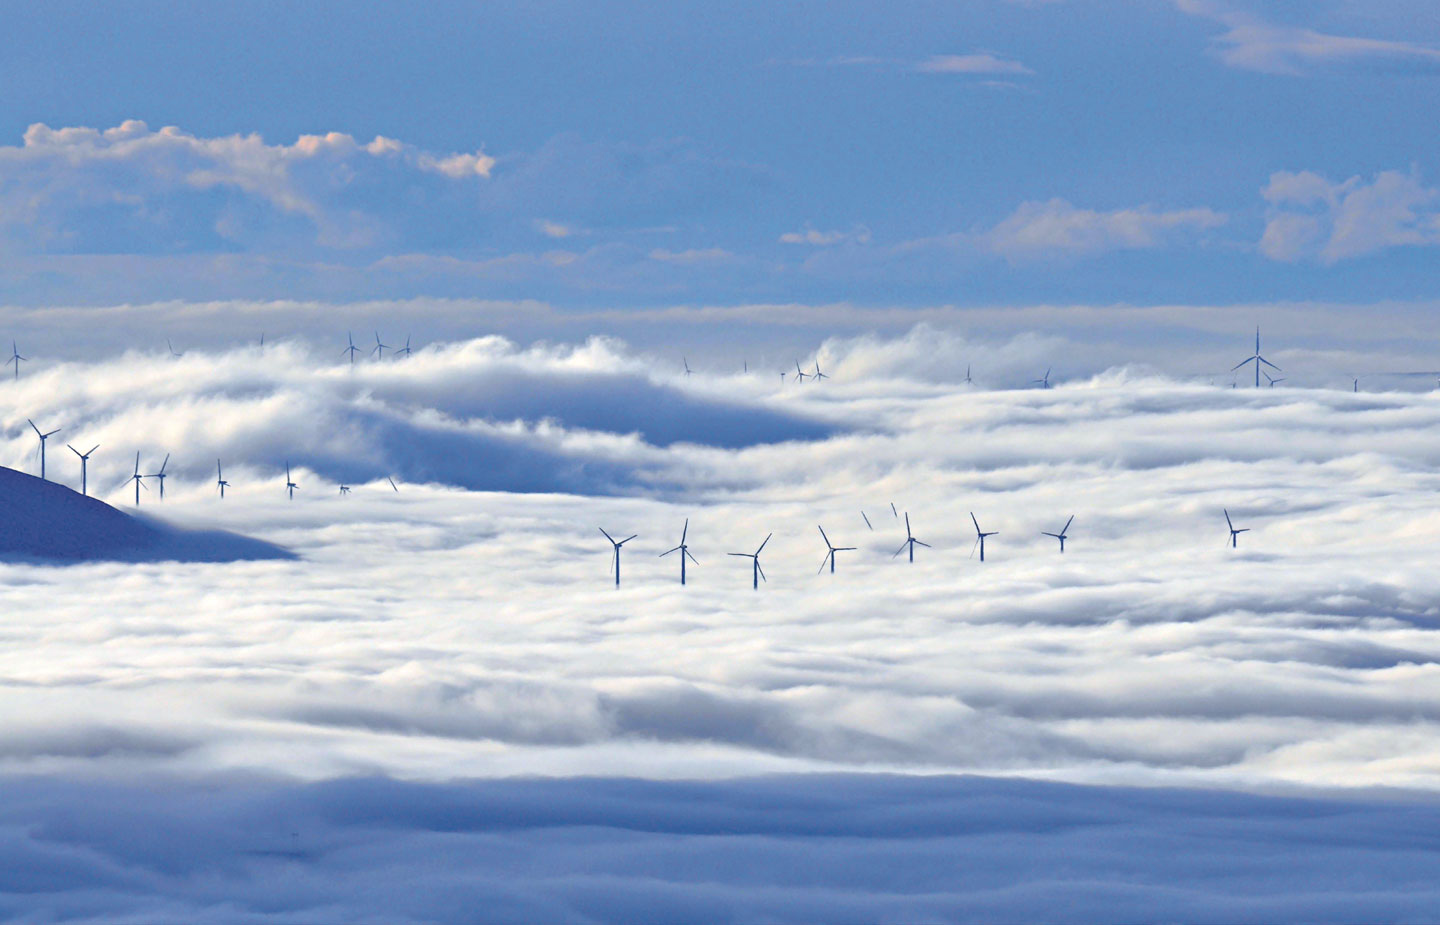 Image of windmills in the clouds